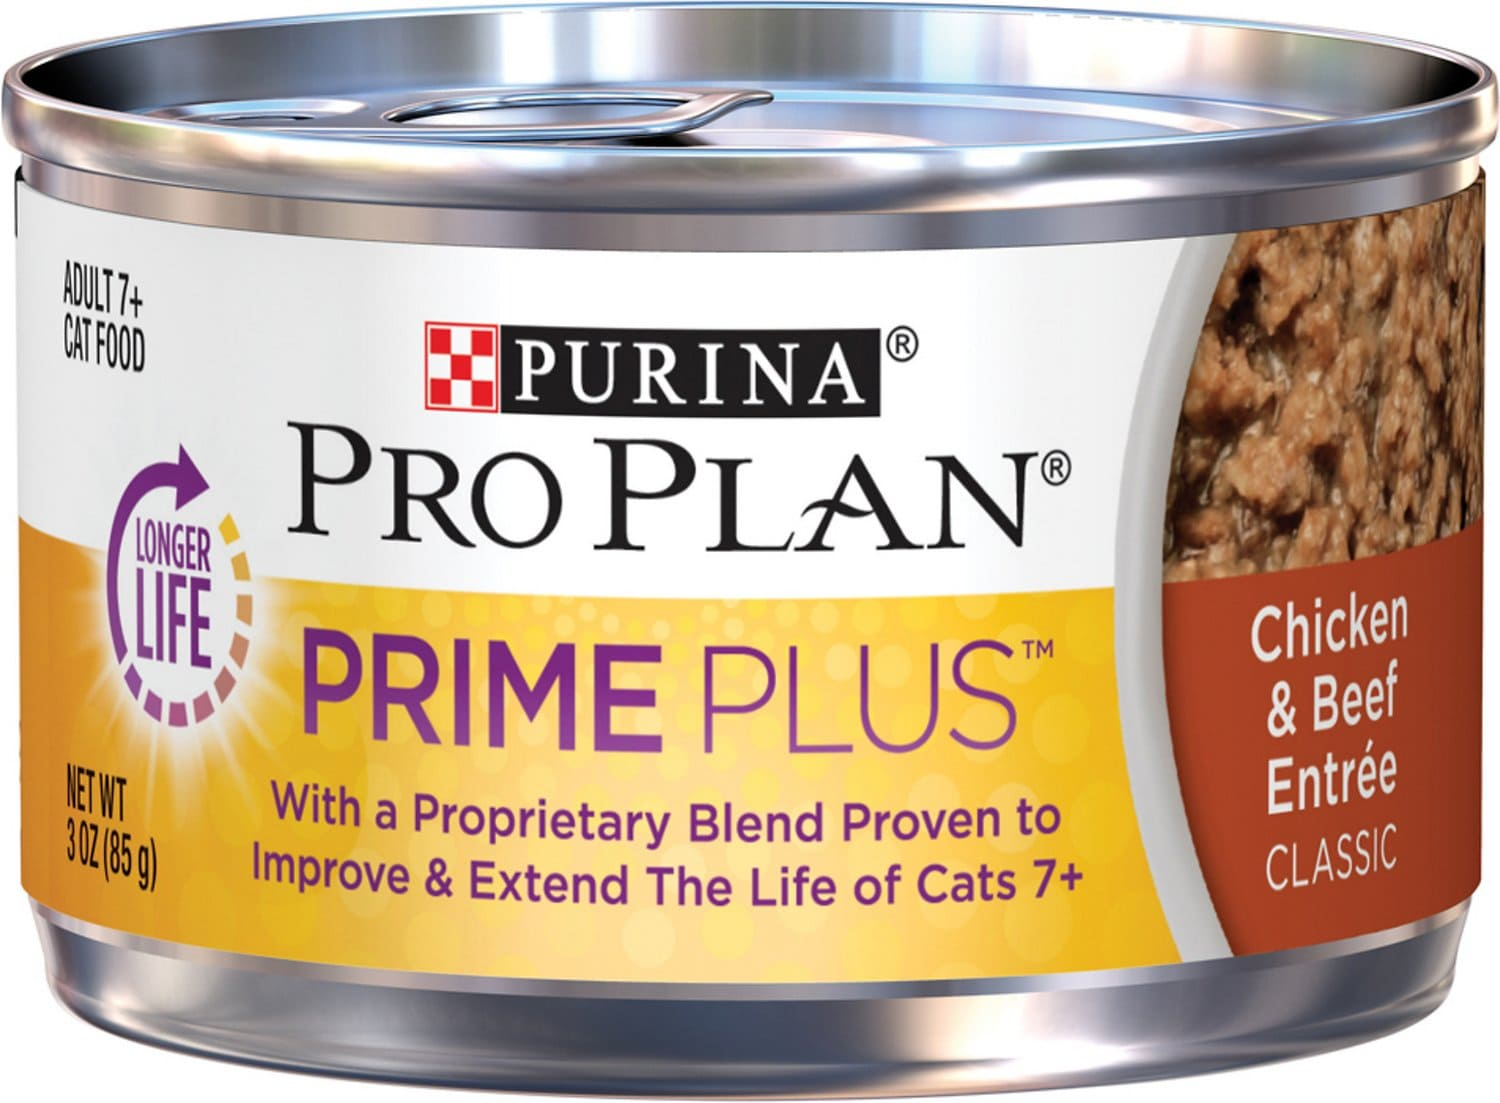 Purina Pro Plan Adult 7+ Prime Plus Entrée Classic 24 x 3 oz can Chicken & Beef 1